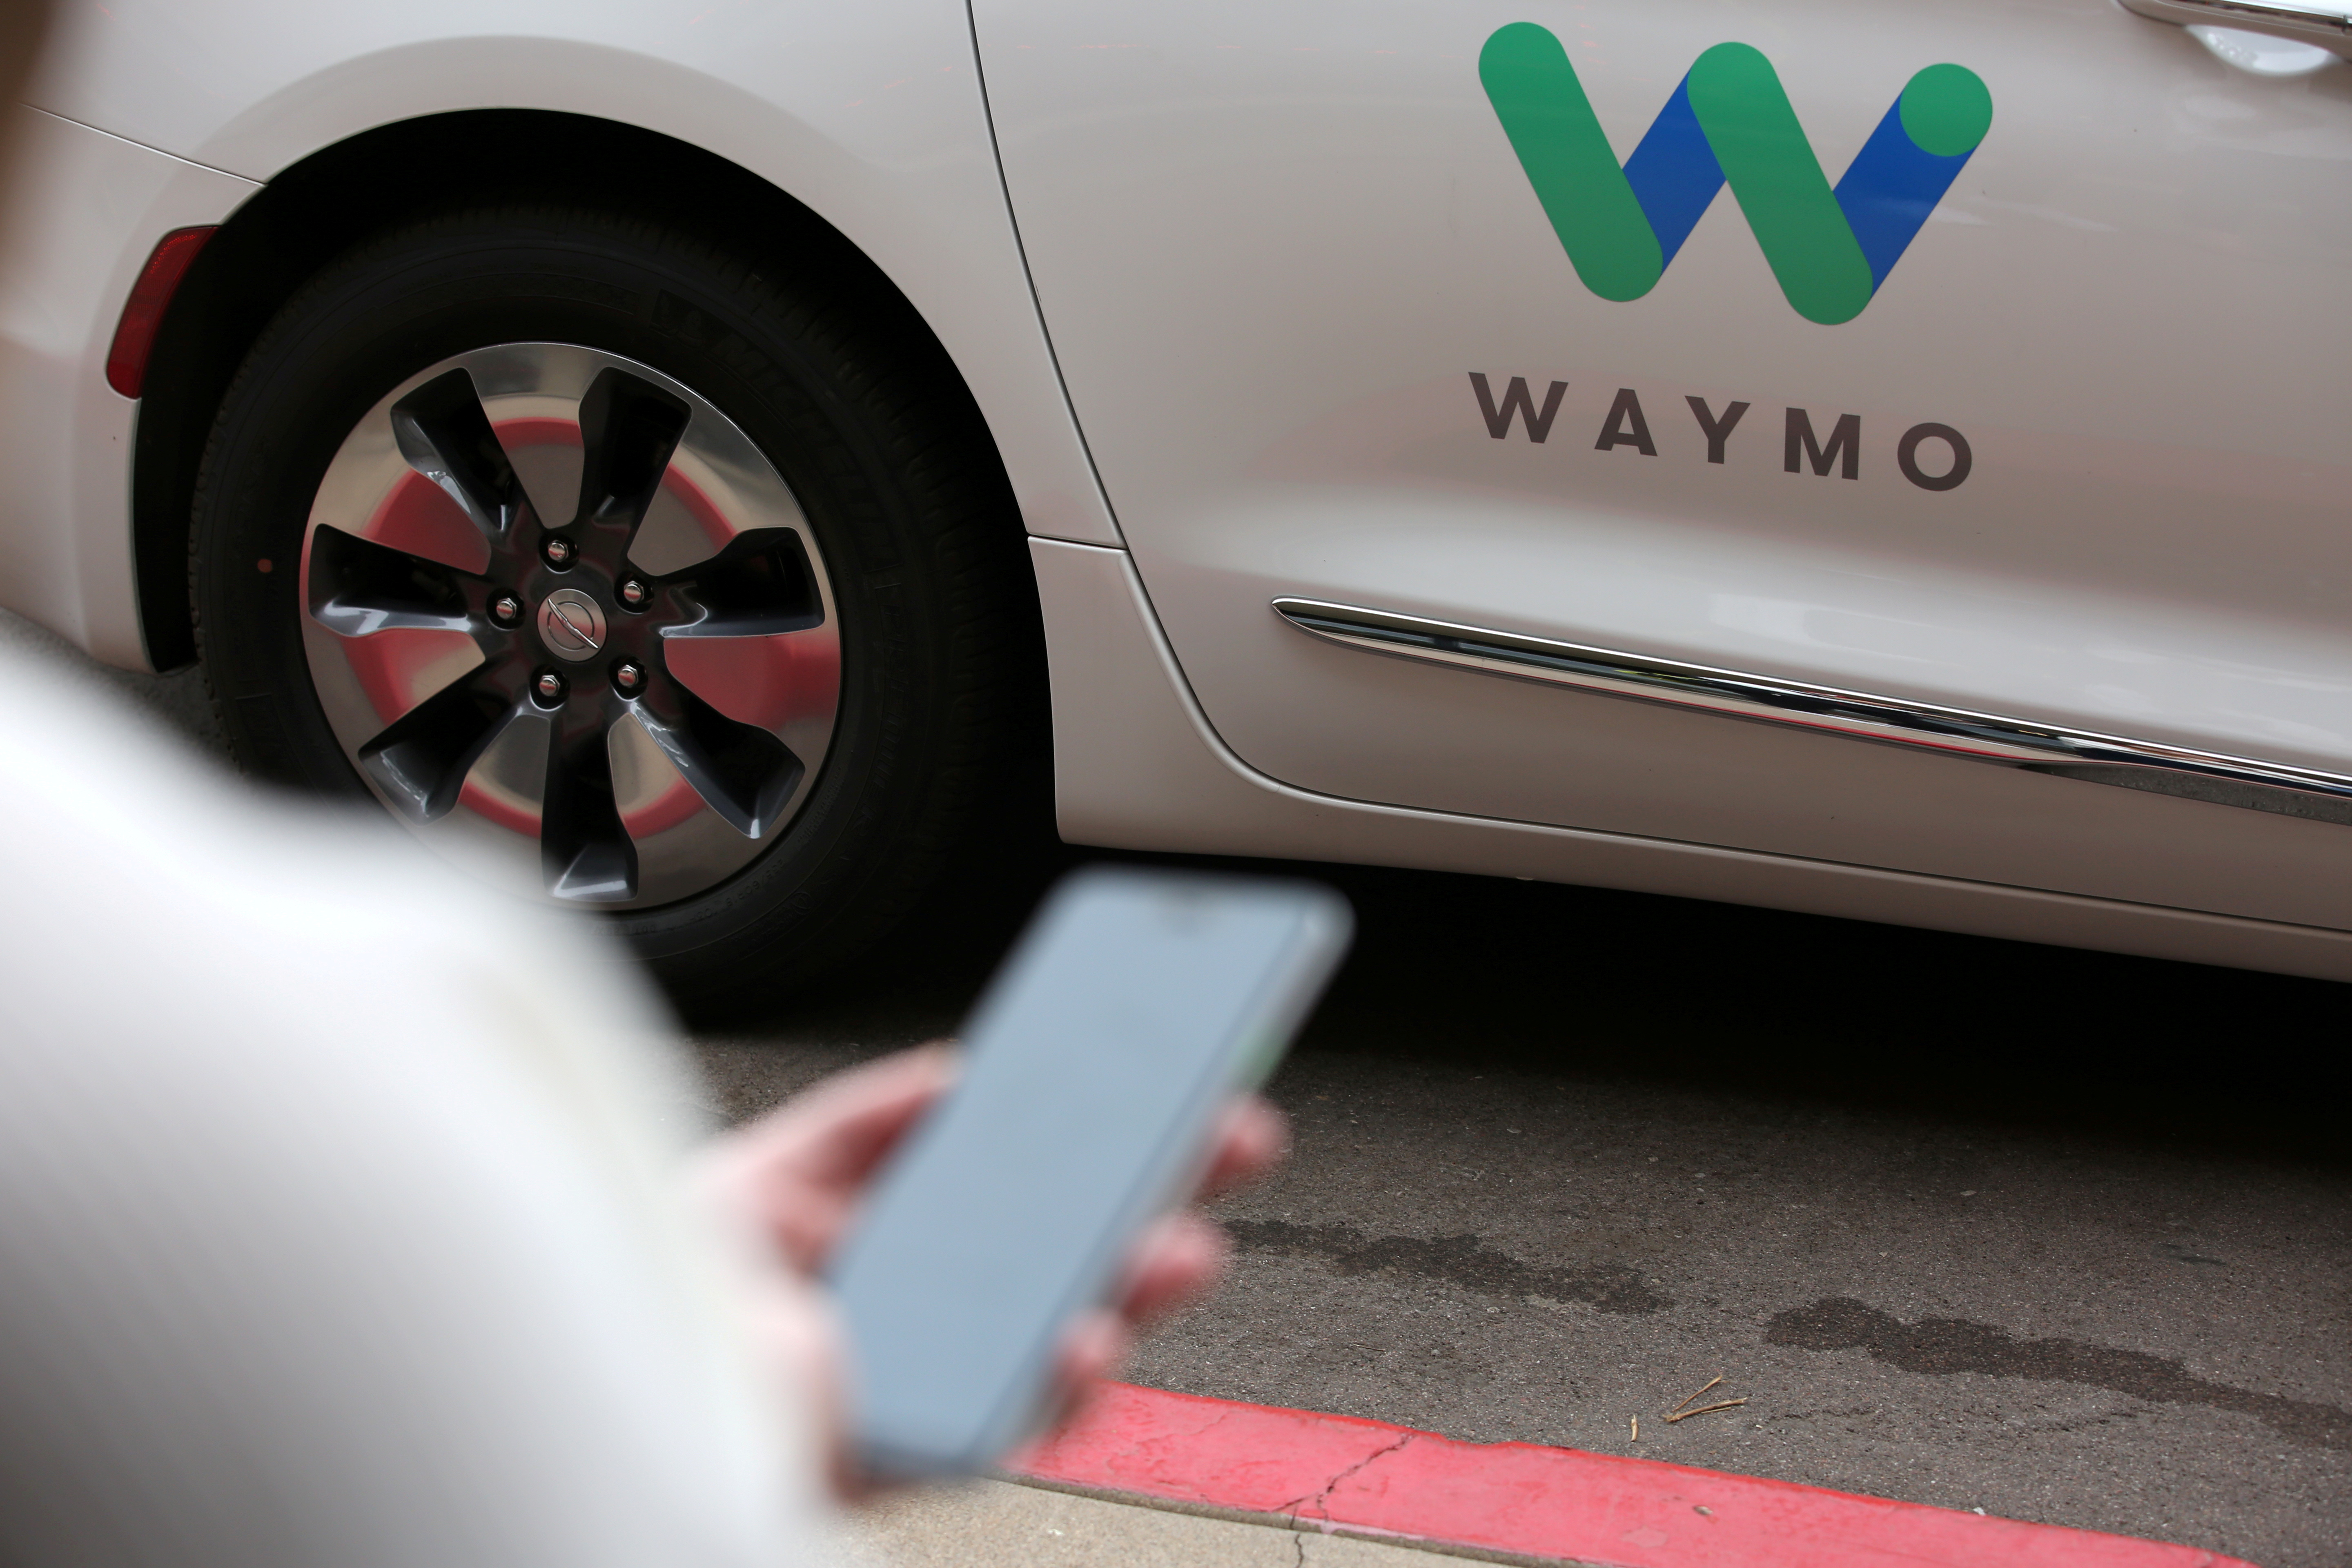 A Waymo employee hails a ride on their phone during a demonstration in Chandler, Arizona, November 29, 2018.  REUTERS/Caitlin O'Hara/File Photo